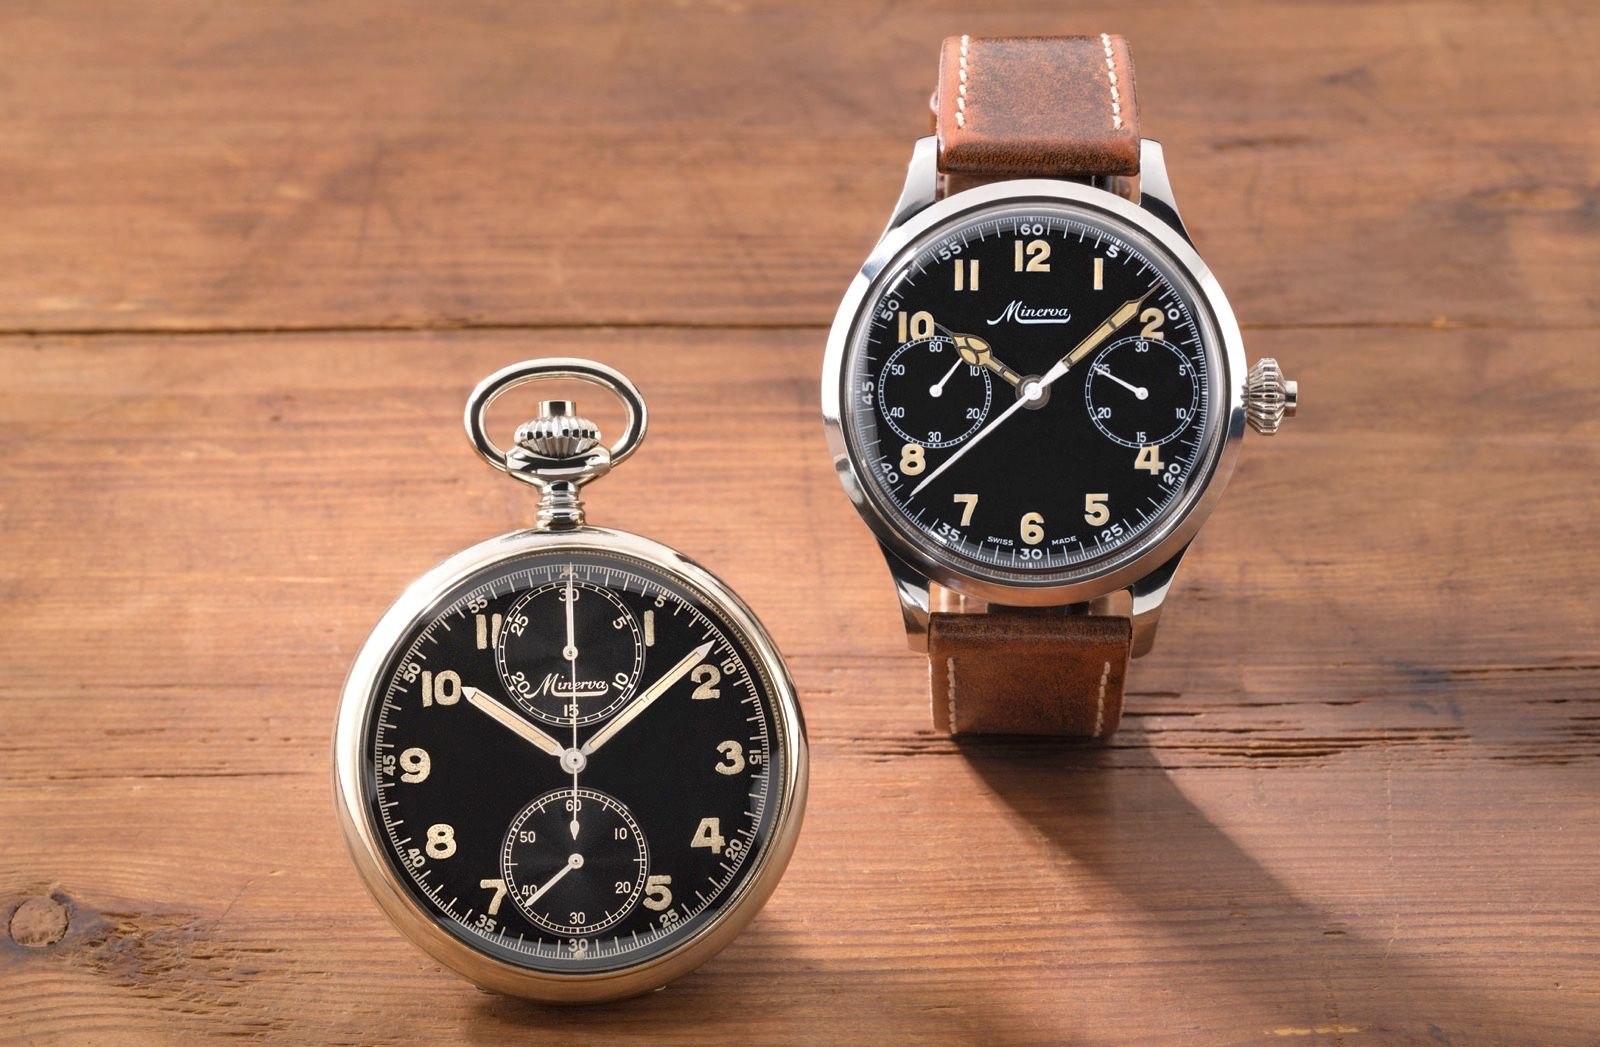 Montblanc SIHH 2018 Collection 1858